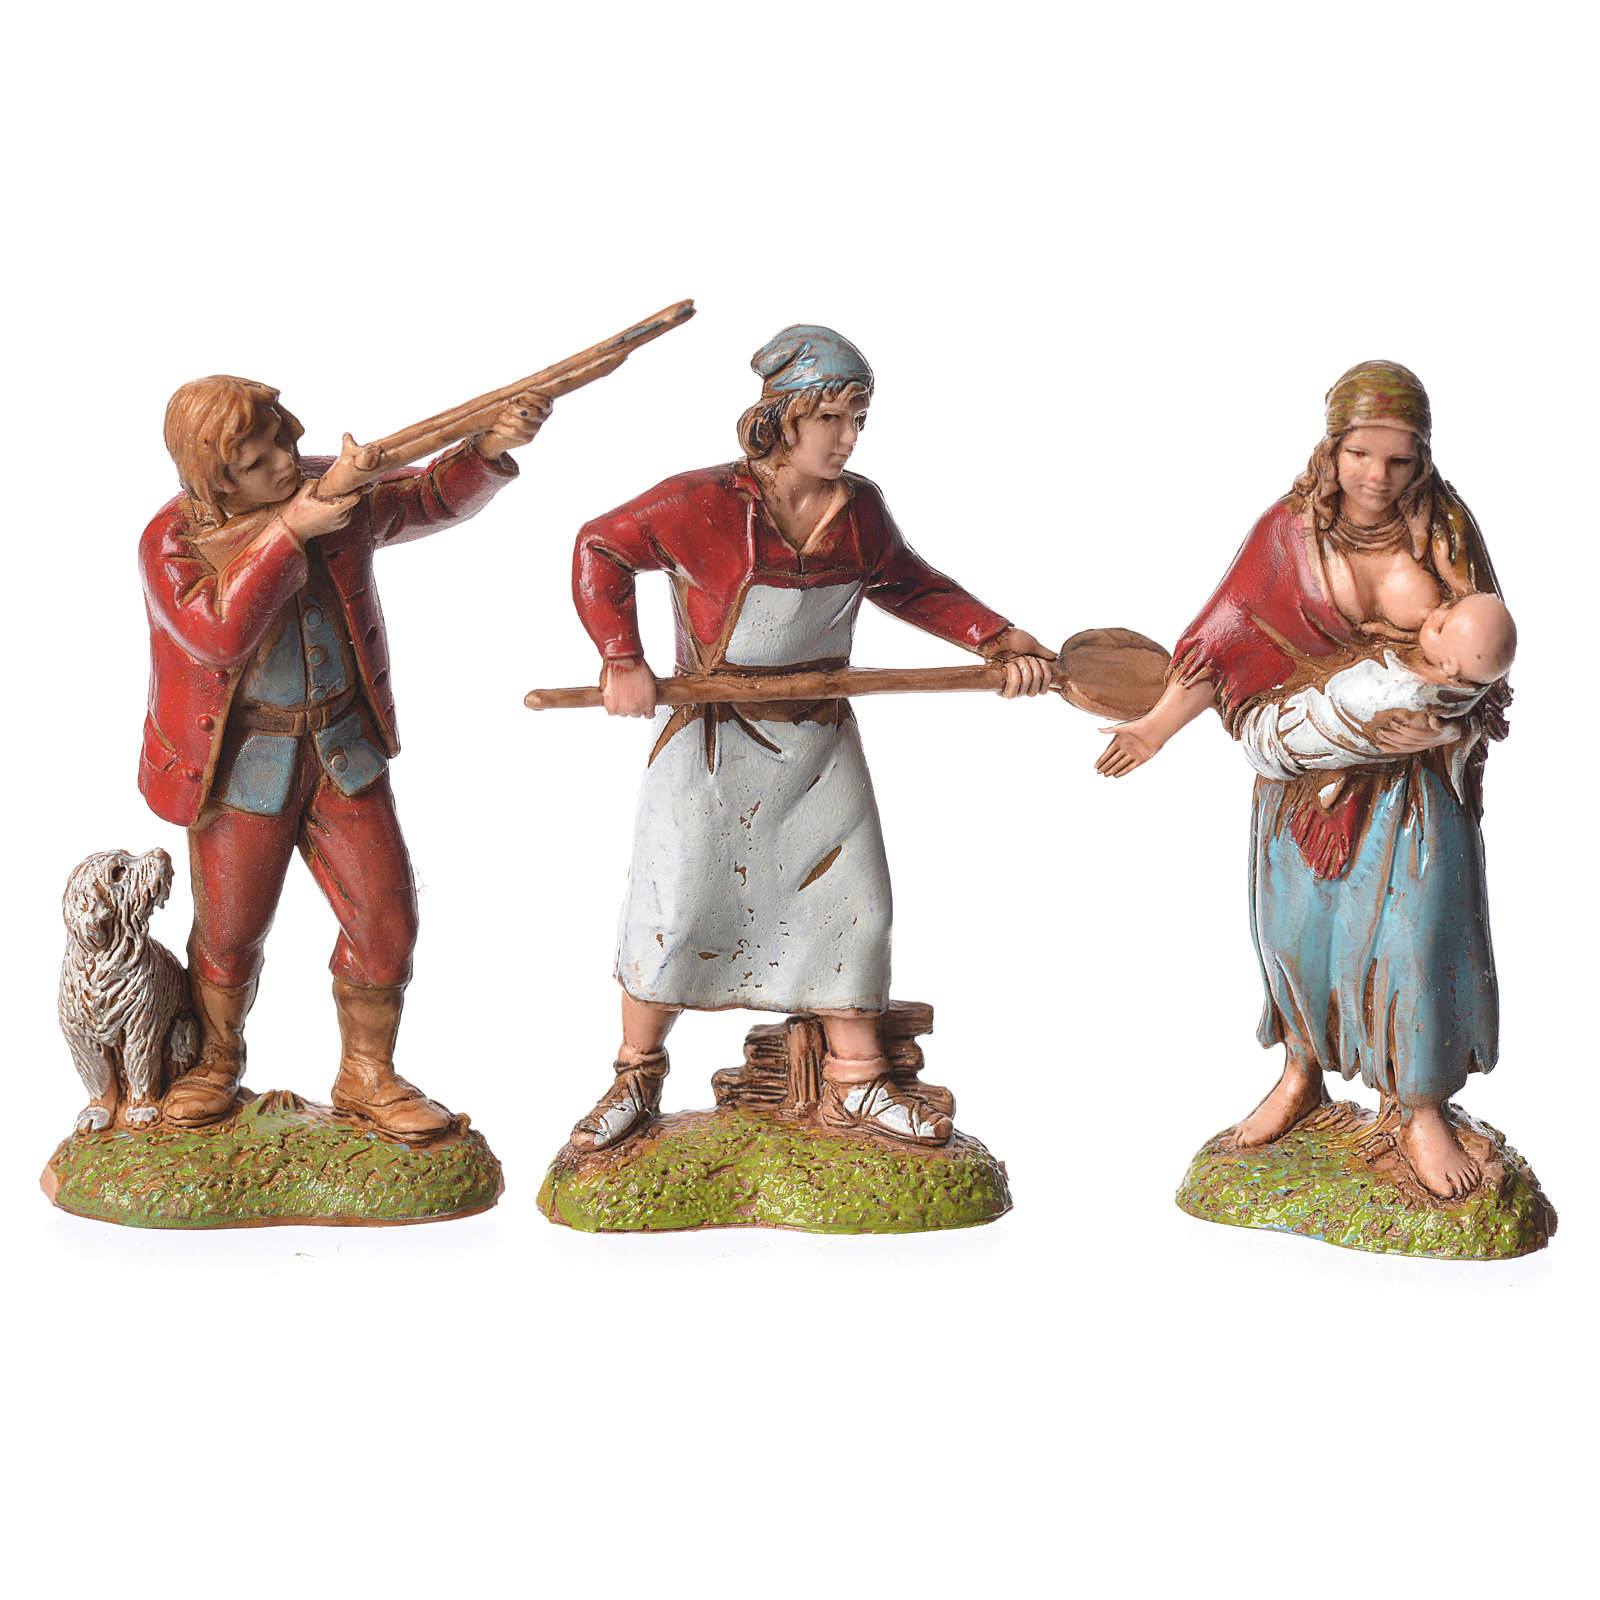 Neapolitan style shepherds, 6 nativity figurines, 6cm Moranduzzo 4